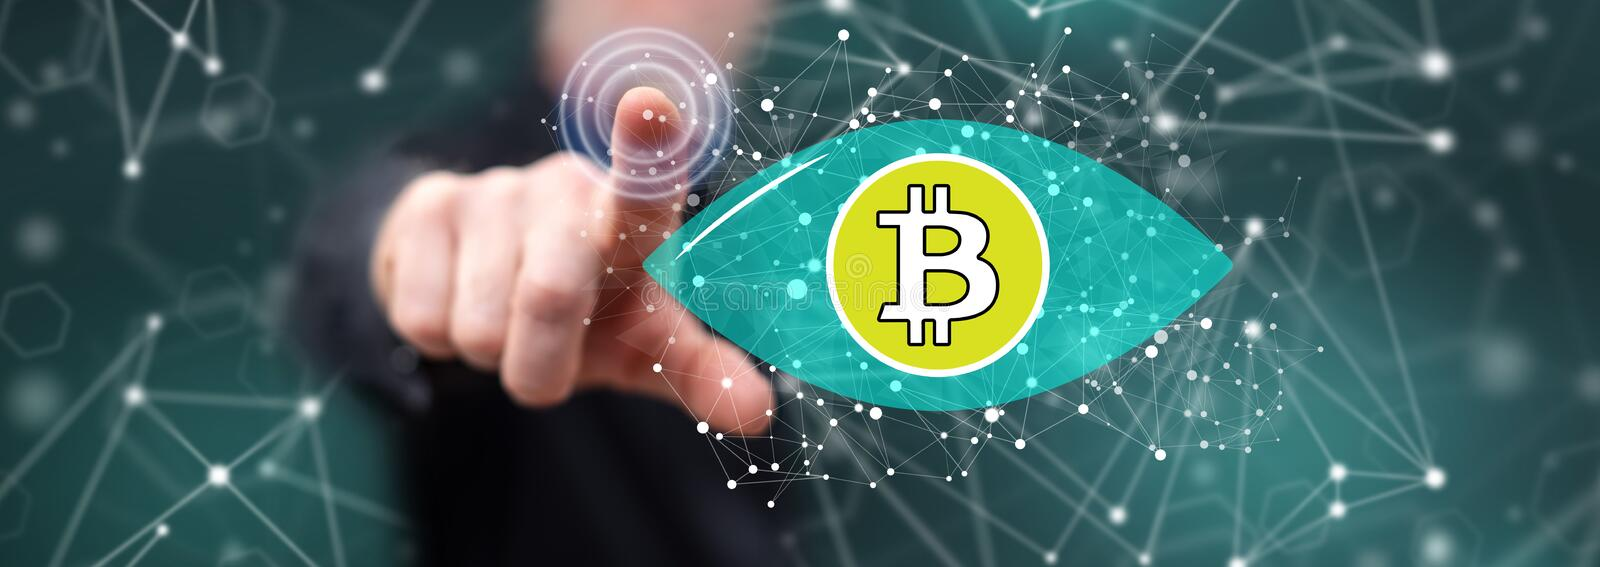 Man touching a bitcoin concept stock image